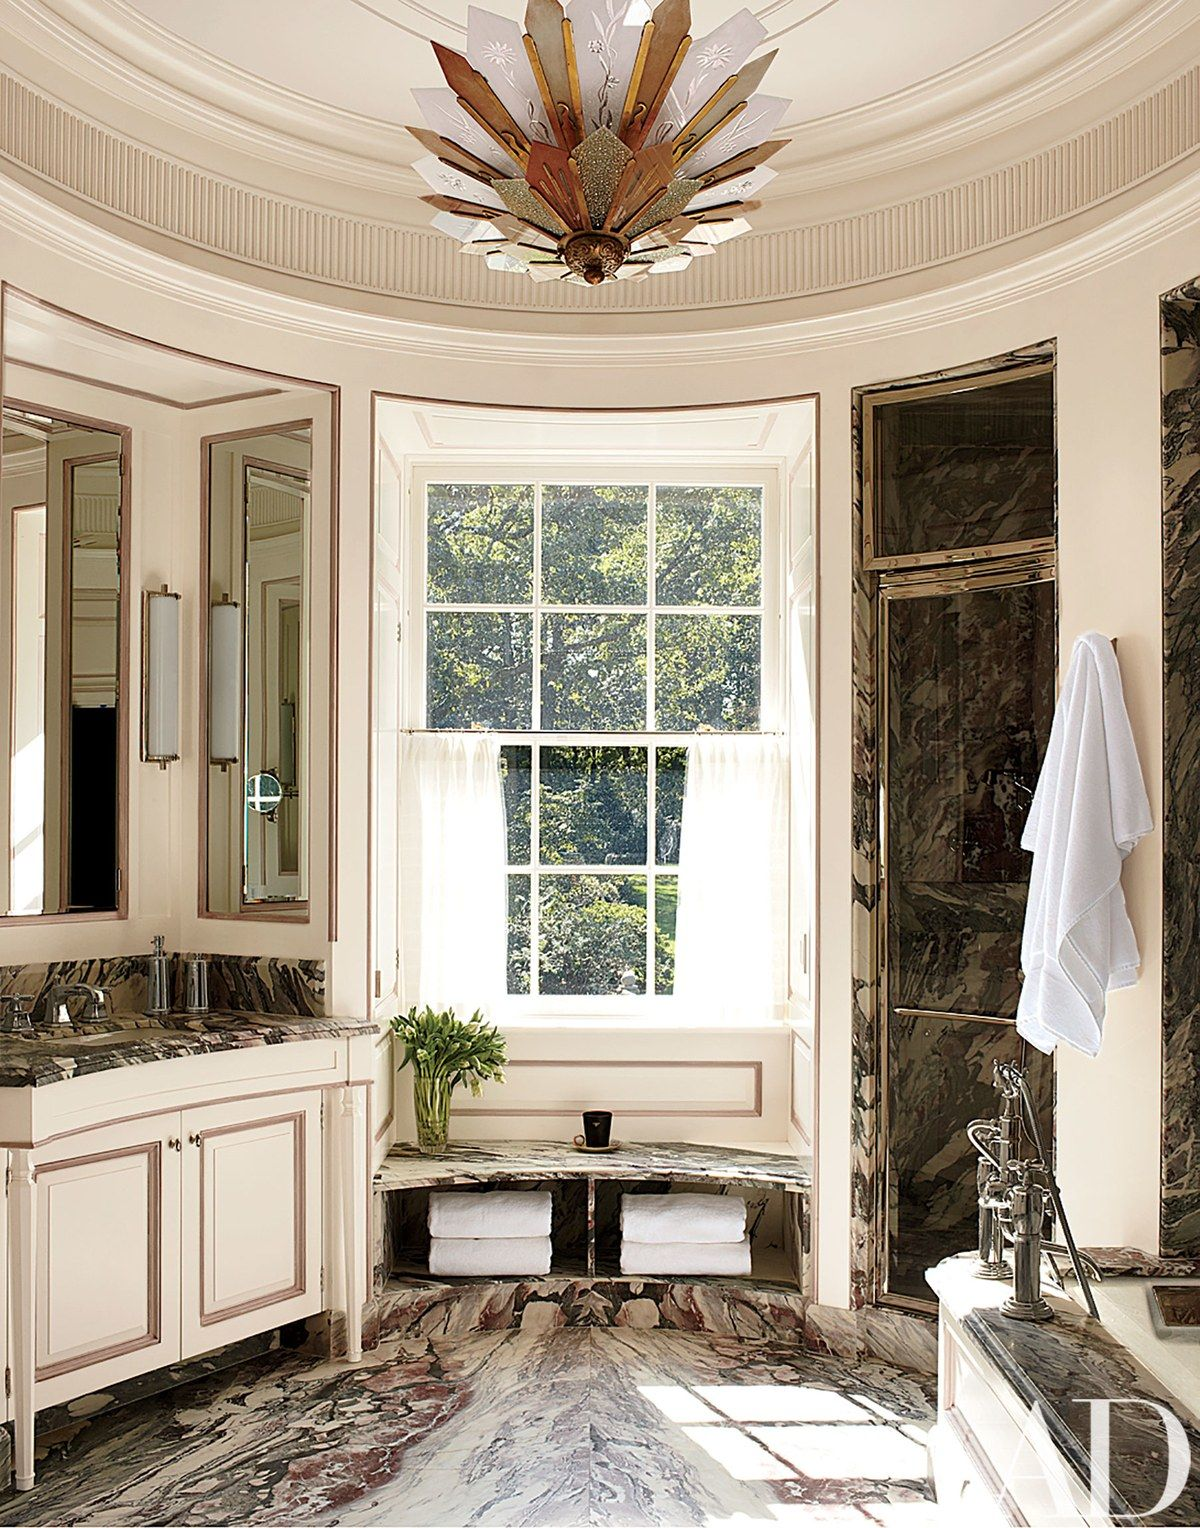 The master bath is sheathed in fior di pesco apuano marble the